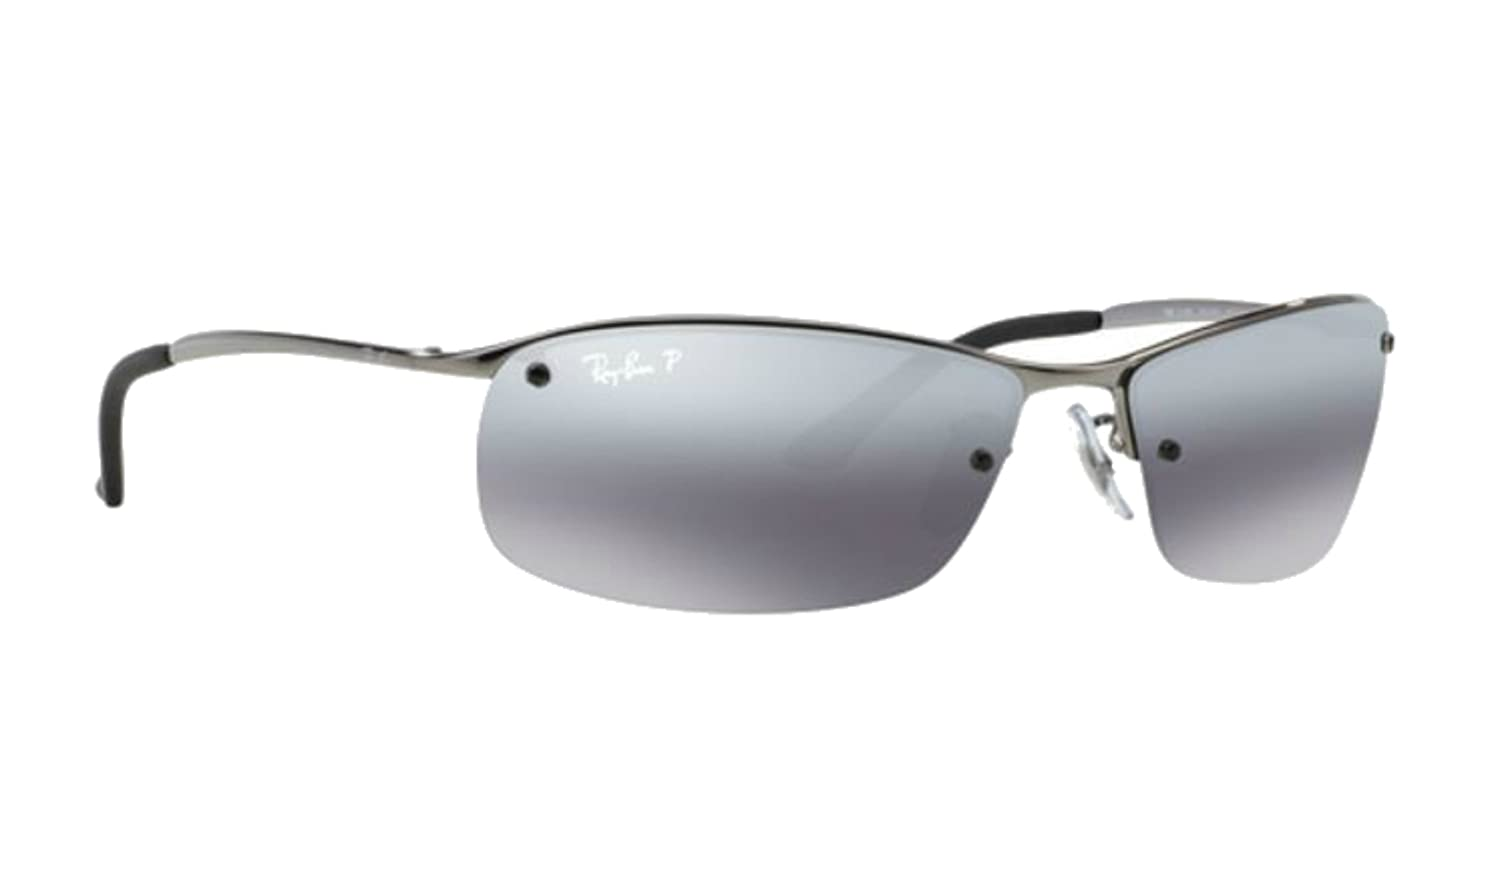 80f7e7b159 Ray-ban Silver Mirror RB 3183 004 82 63mm Polarized Sunglasses + SD Glasses  +Kit  Amazon.co.uk  Clothing